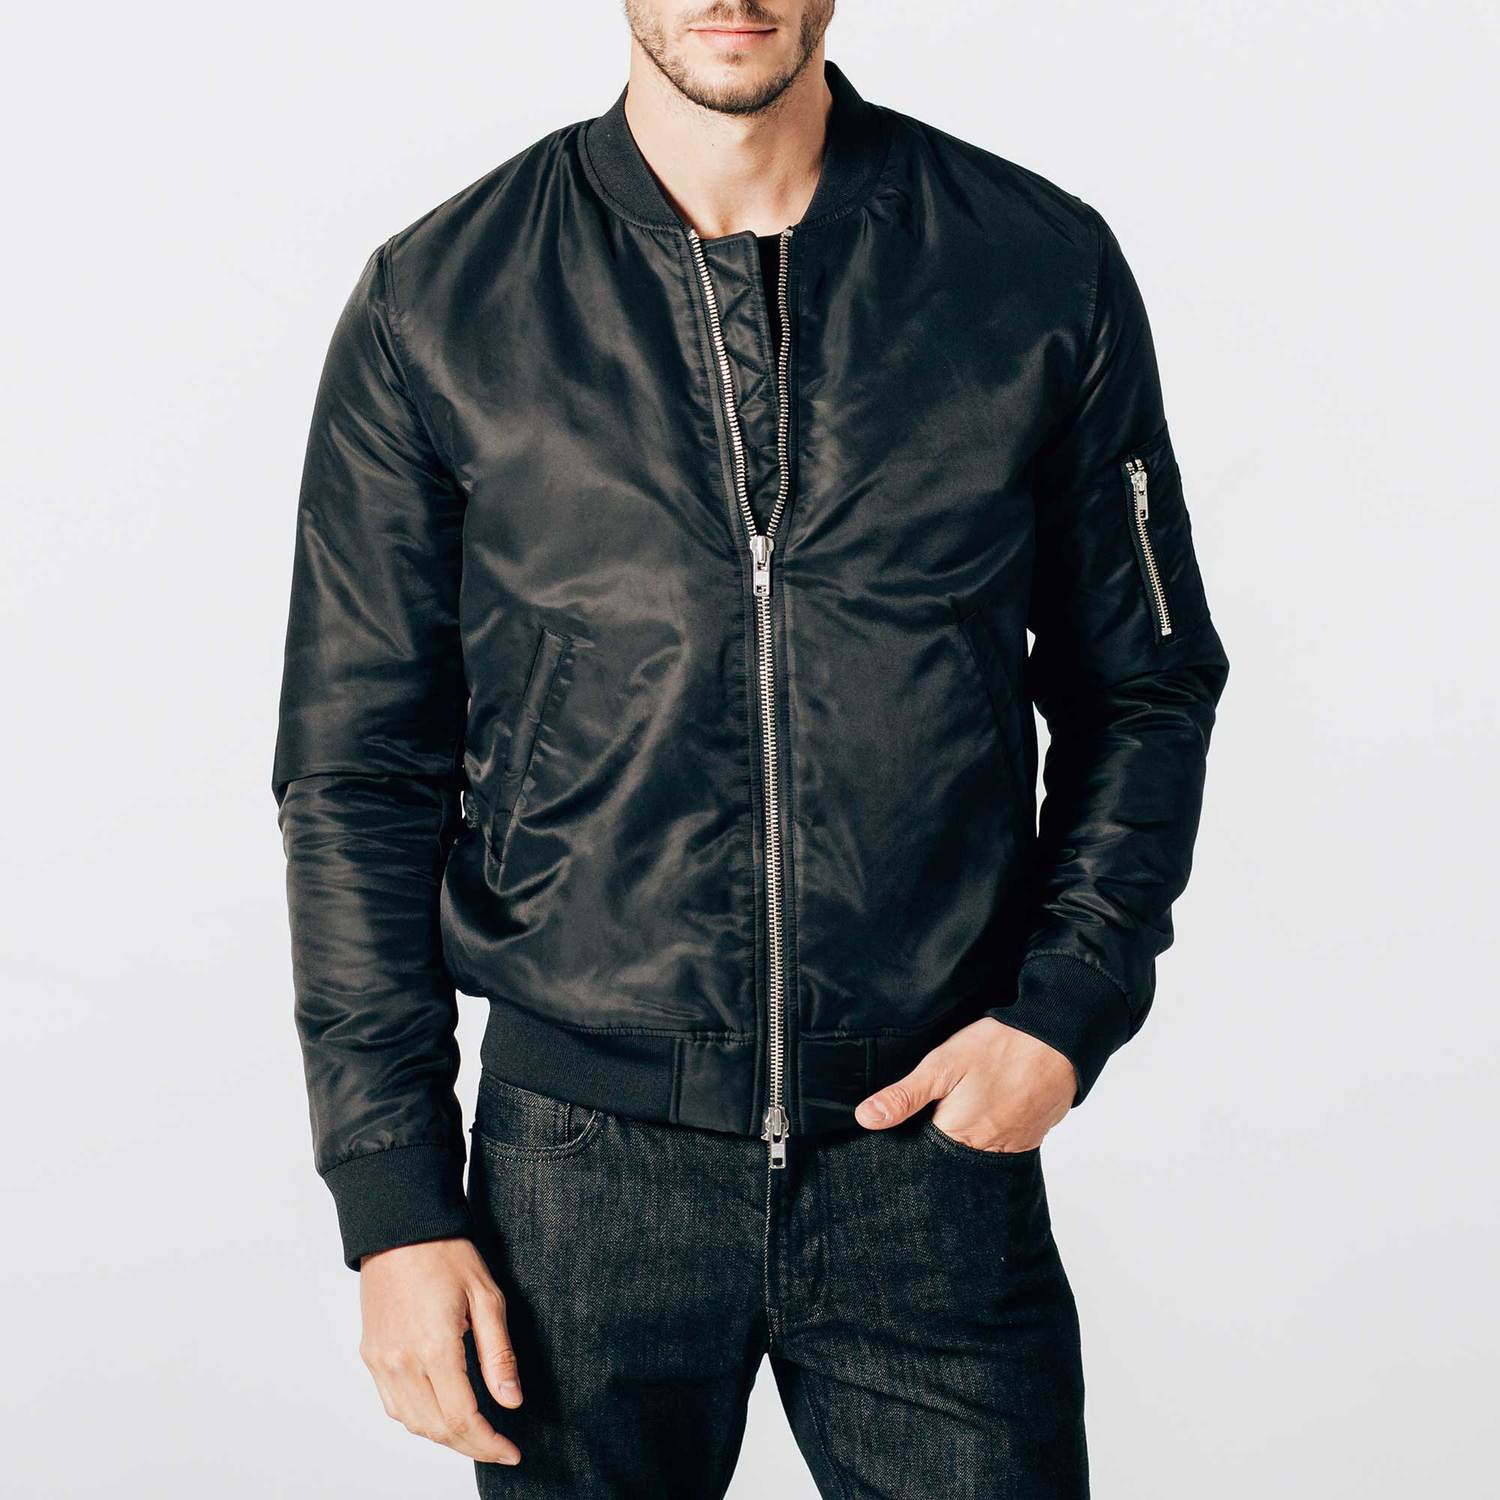 Mens Nylon Bomber Jacket With Silver Zippers In Black $33 ...